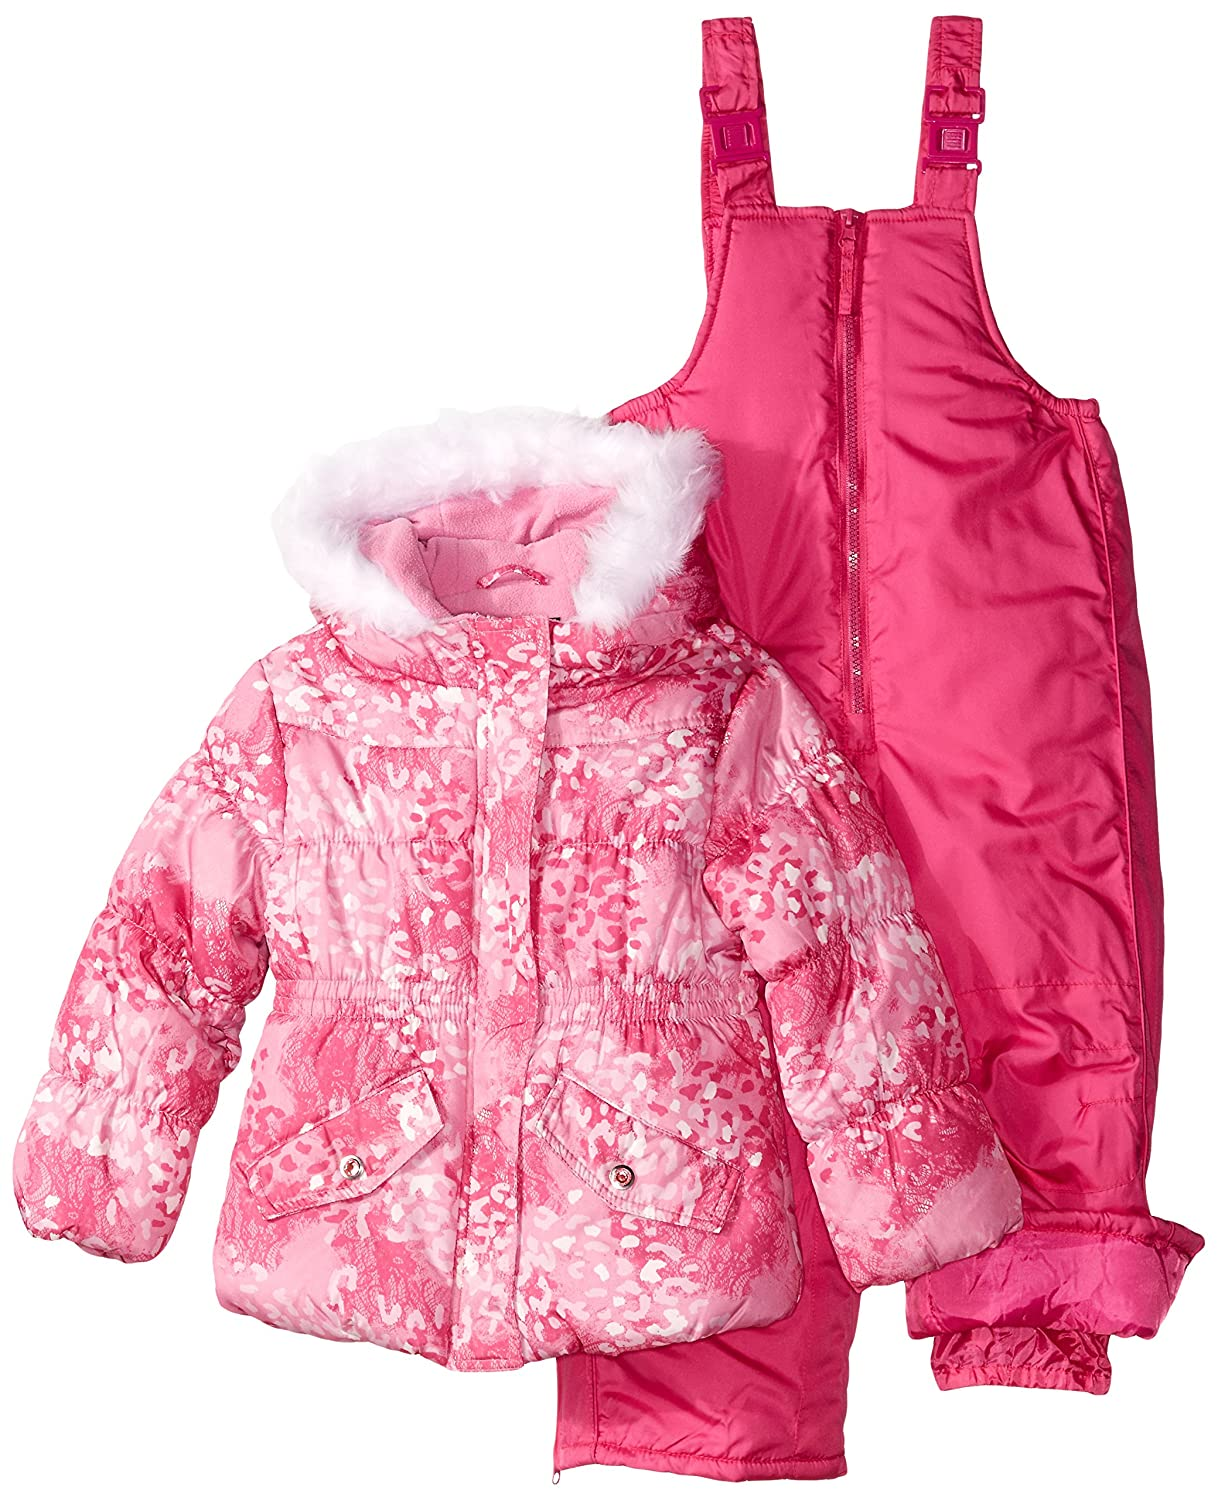 Rothschild Little Girls' Snowsuit with Printed Puffer Coat Toddler Pink Lace Leopard Small/2T Rothschild Girls 2-6x